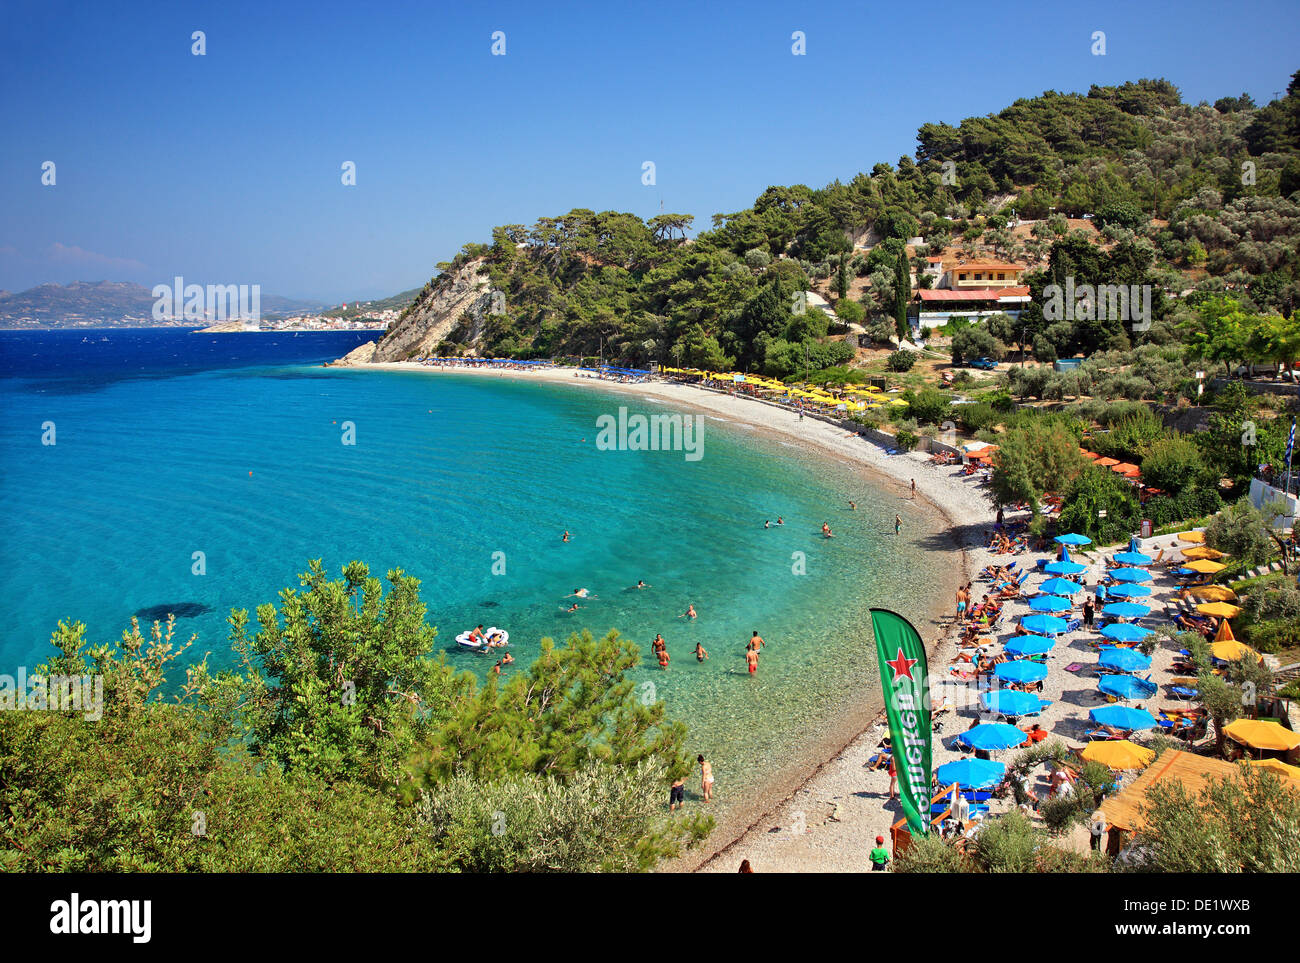 Tsamadou beach, one of the most popular beaches of  Samos island, Aegean sea, Greece. - Stock Image